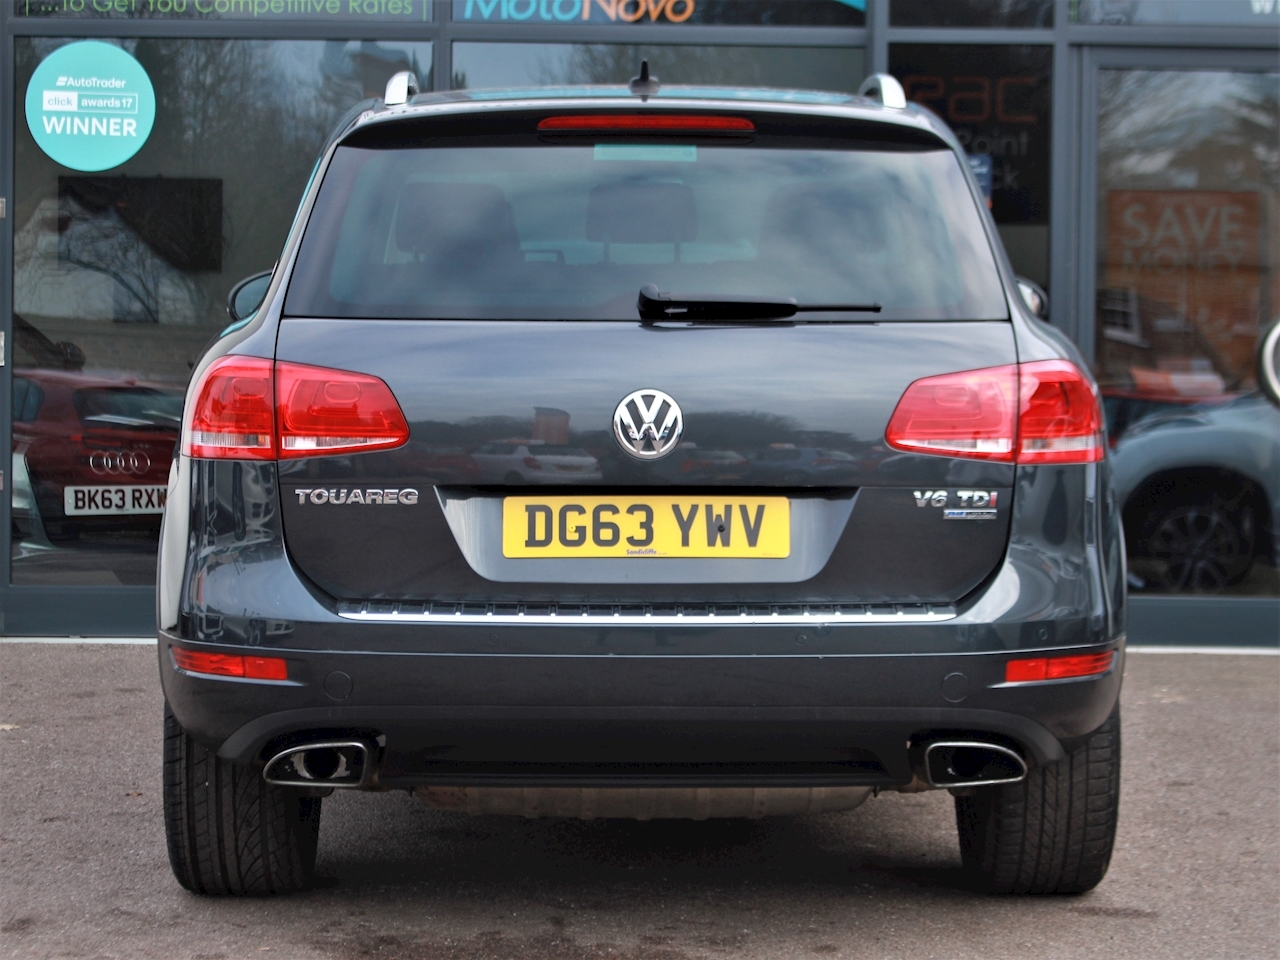 Volkswagen Touareg V6 Se Tdi Bluemotion Technology - Large 9